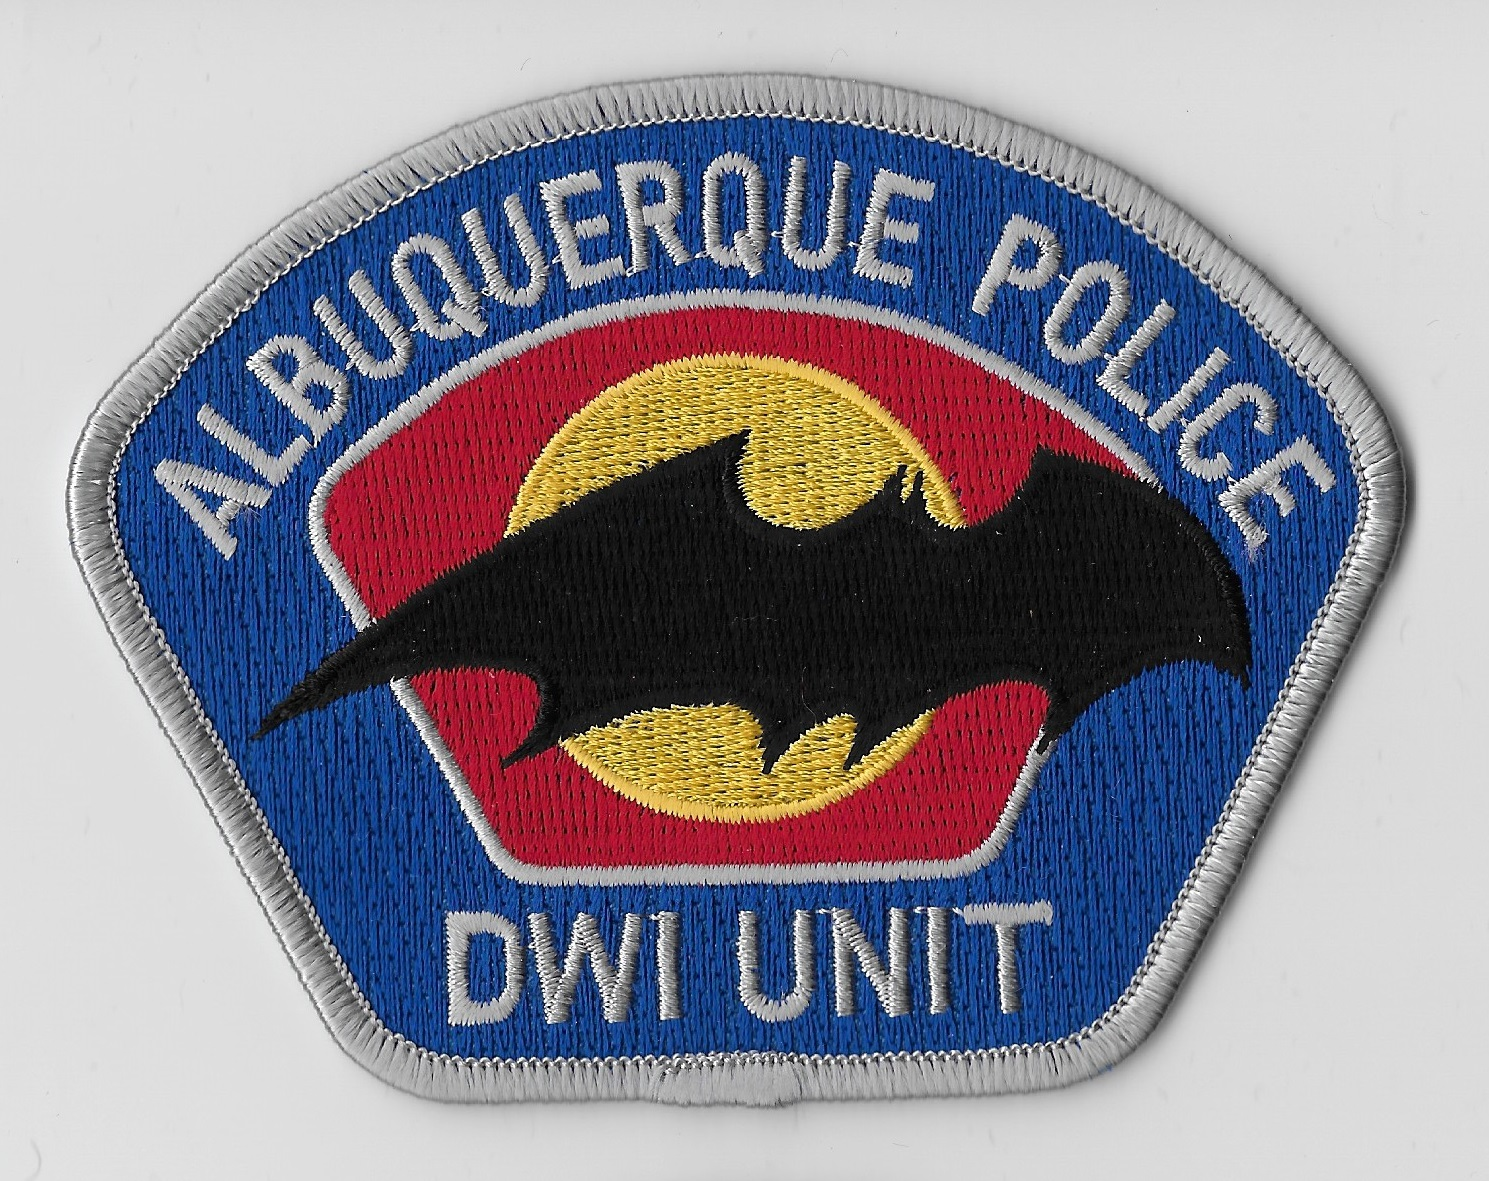 Albuquerque Police DWI Unit NM